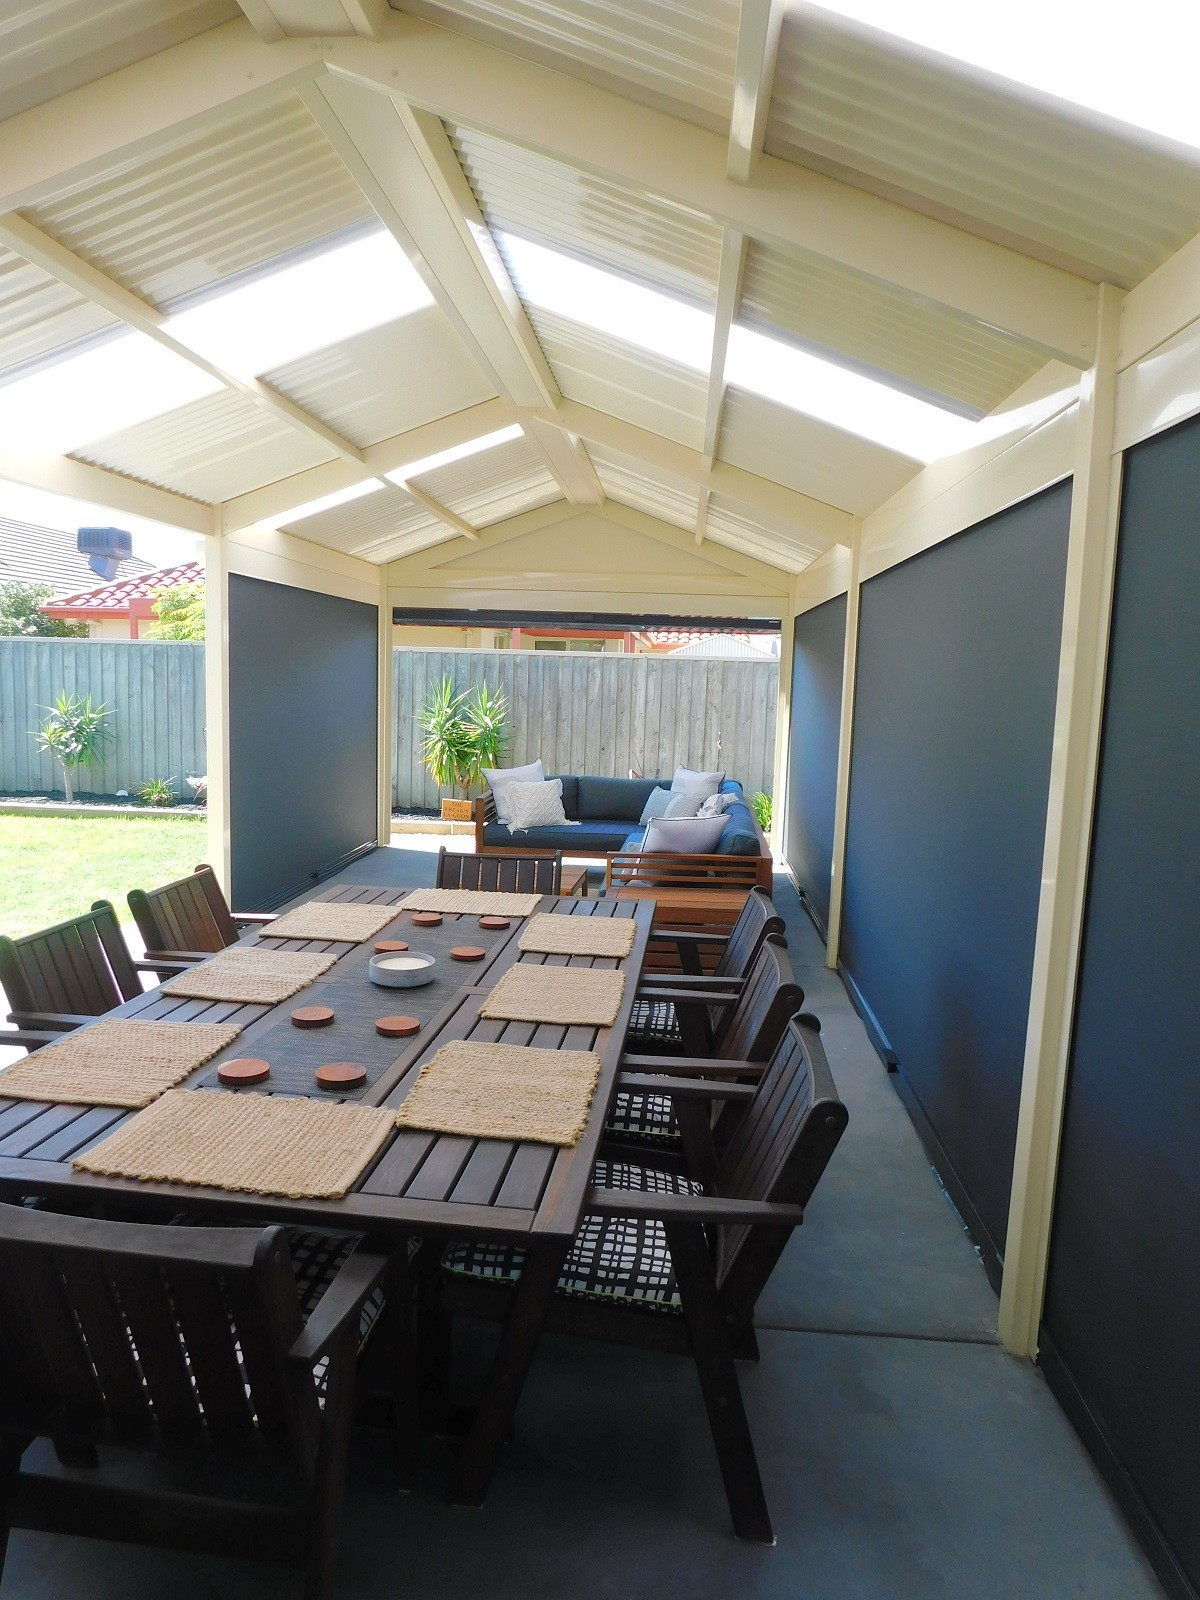 Which is better for your outdoor space: ENVIROTEX vs Café Blinds